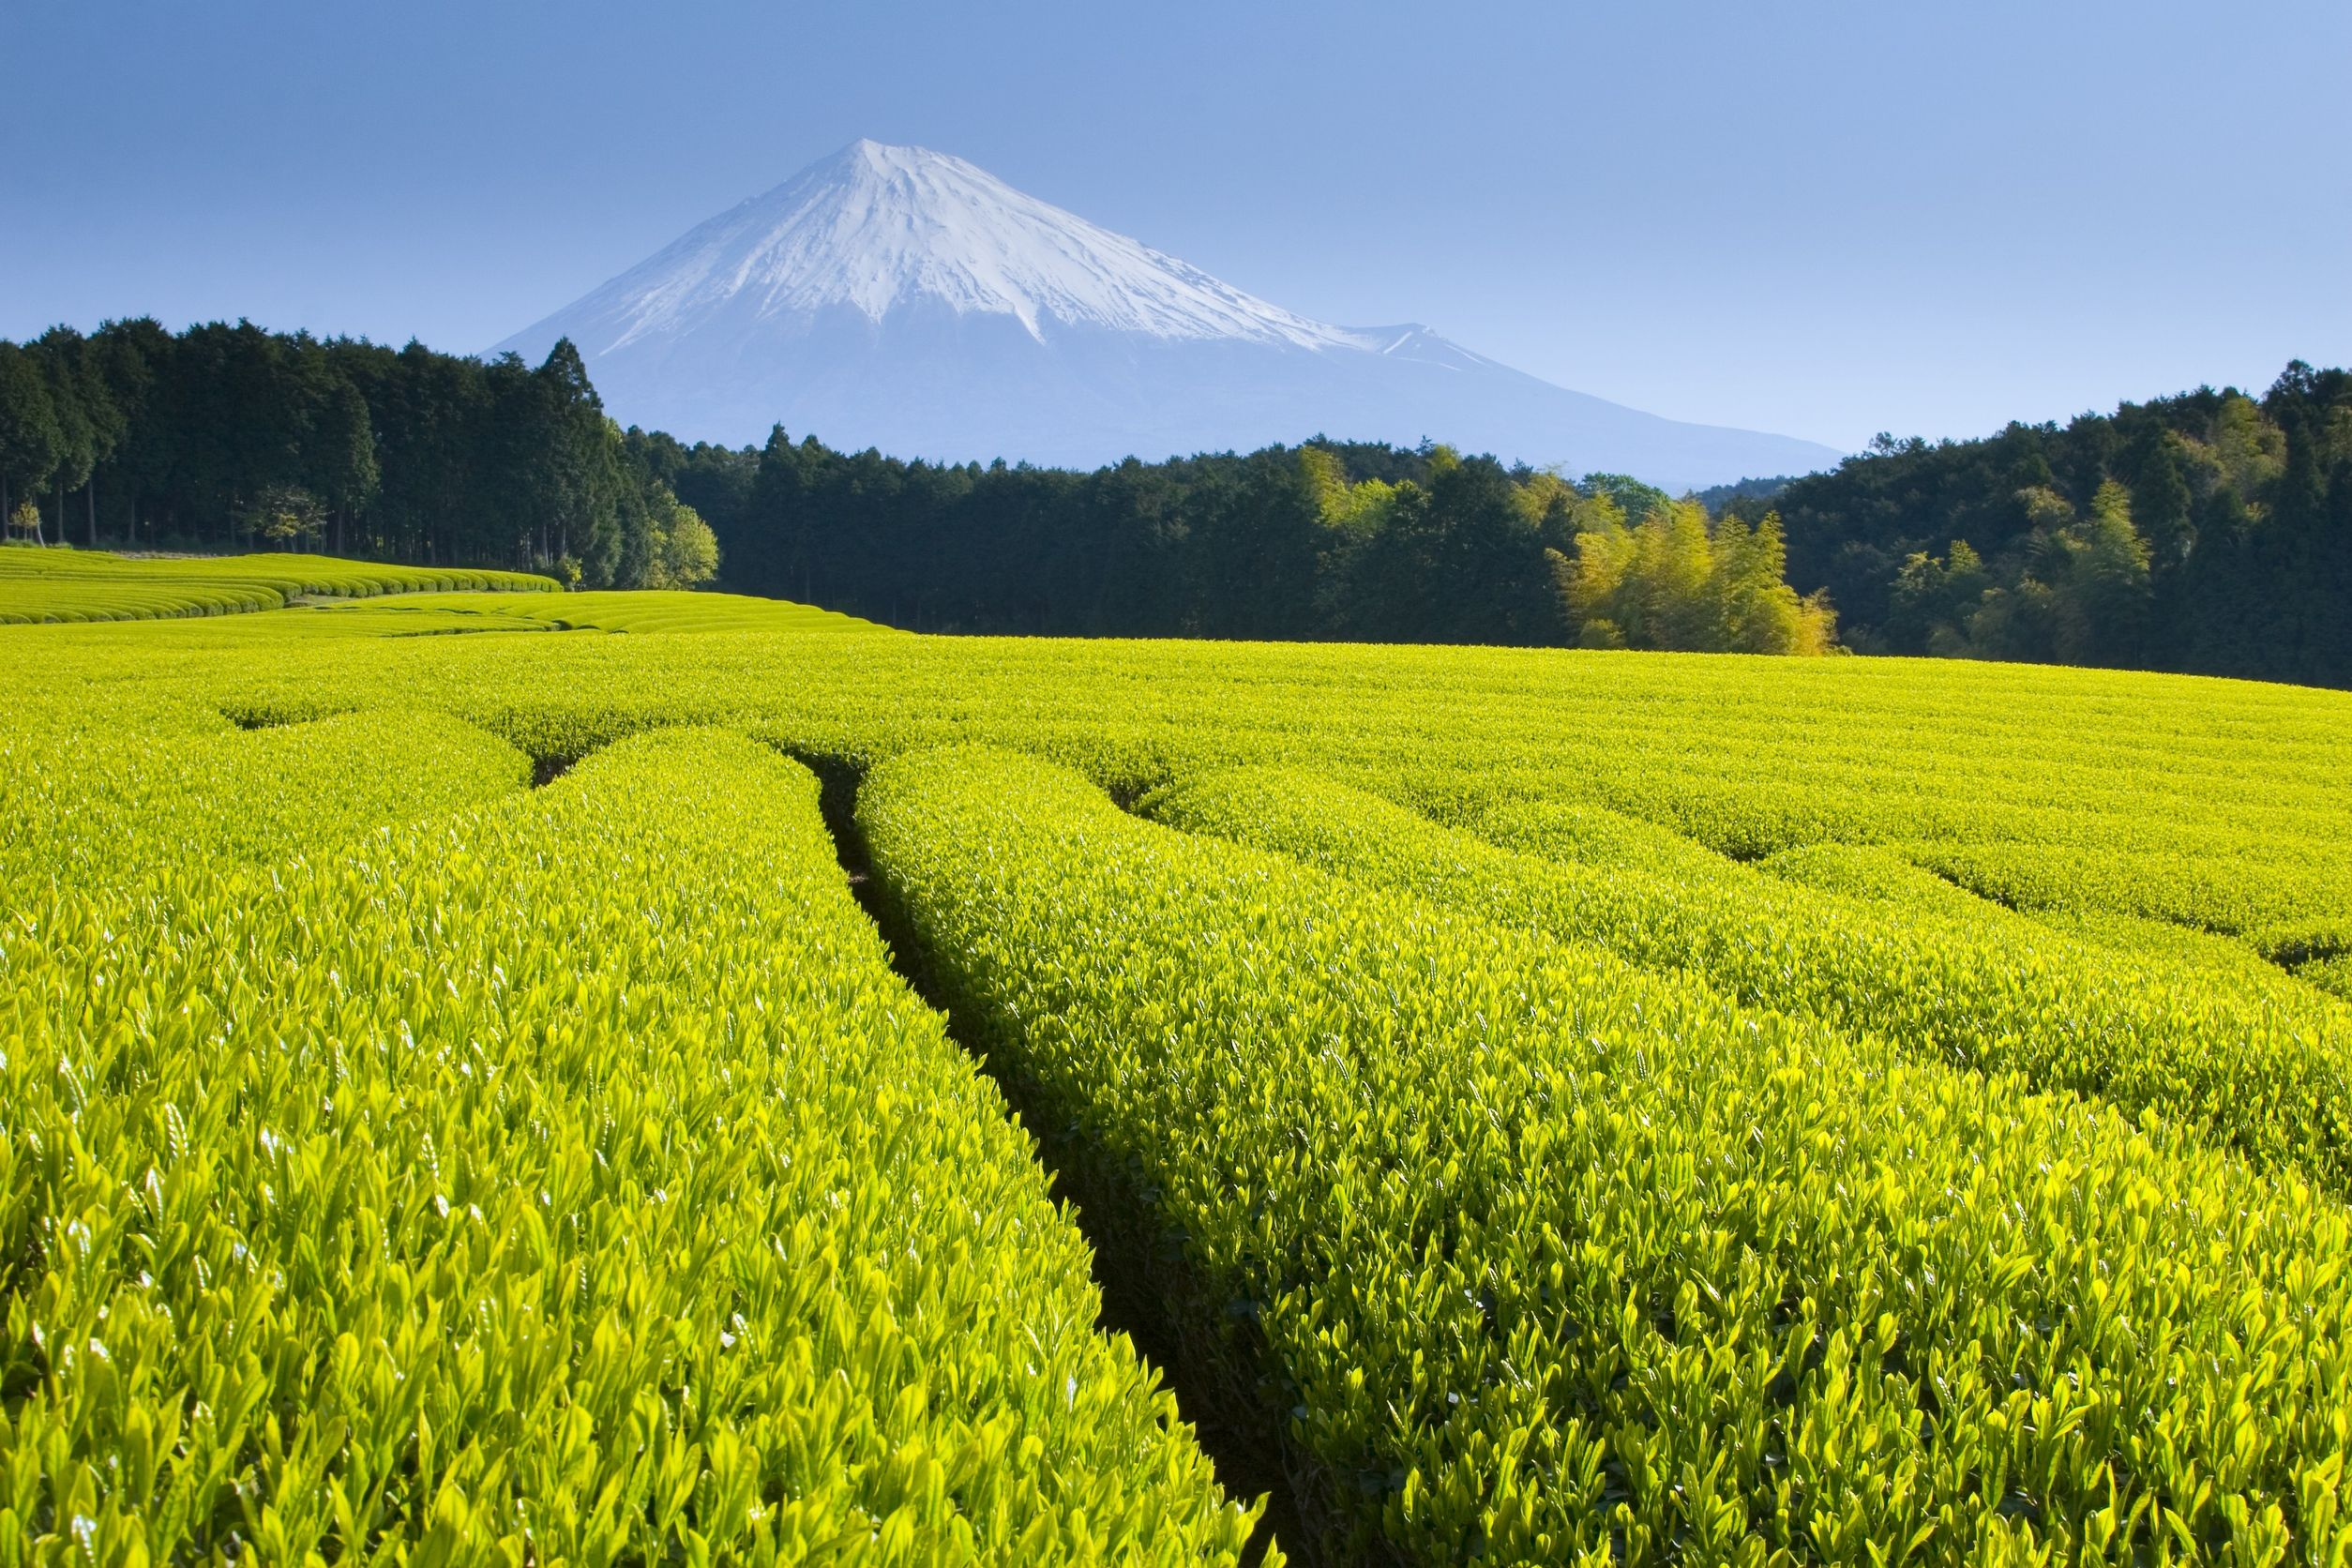 4264912 - green tea fields spread out below mt. fuji